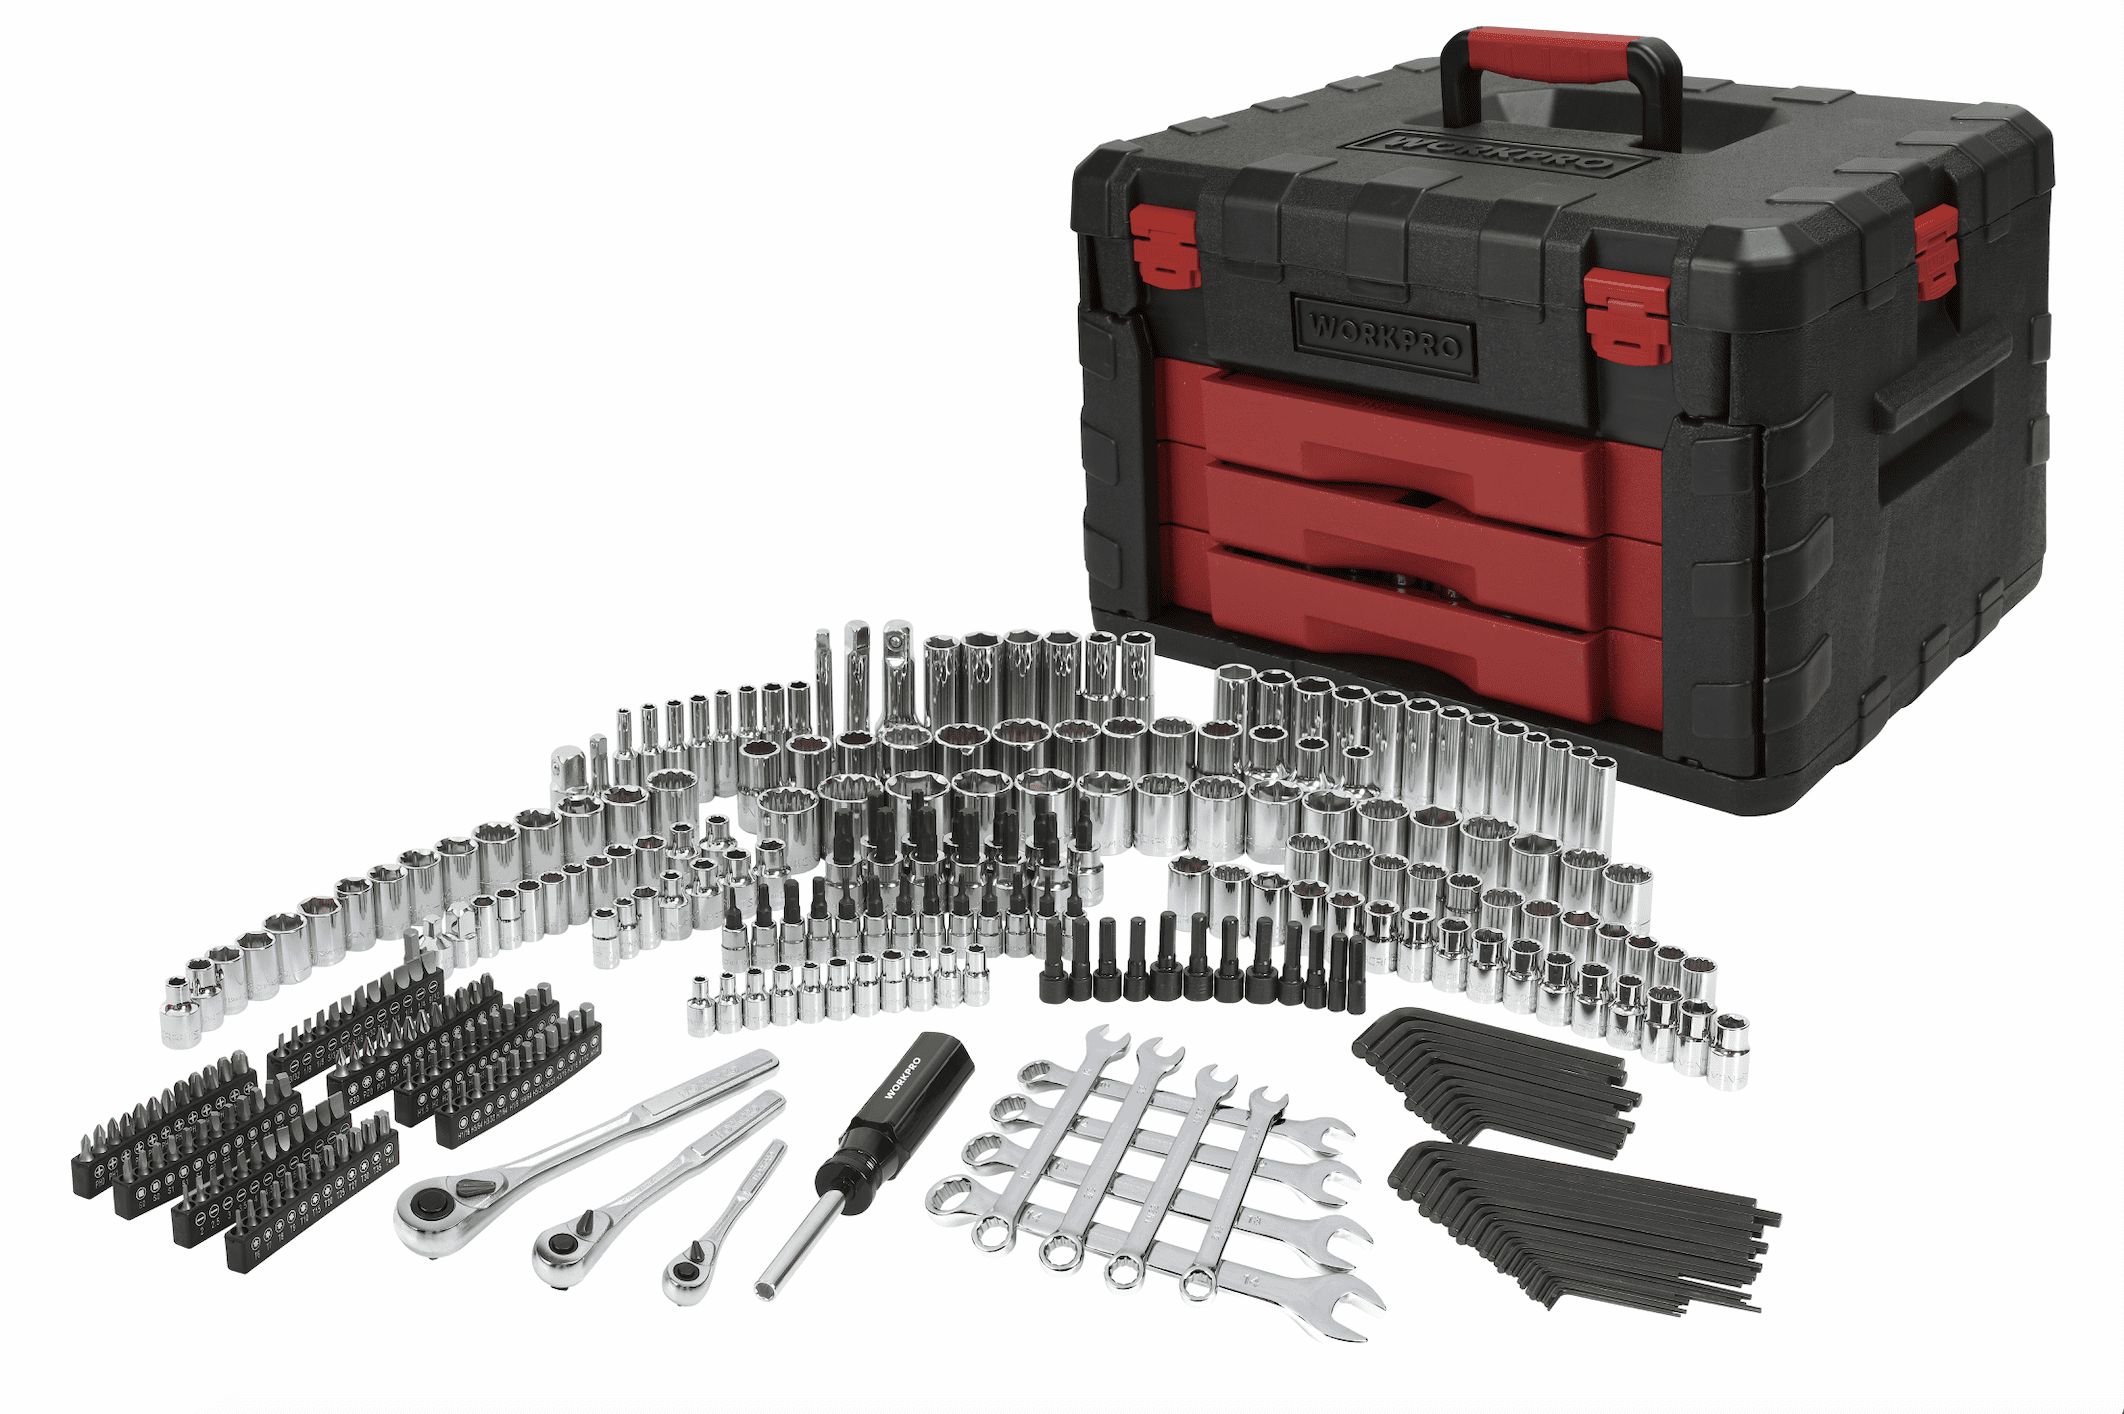 320-Piece Mechanic's Tool Set with Storage Case Sockets Repair Tool Ratchets